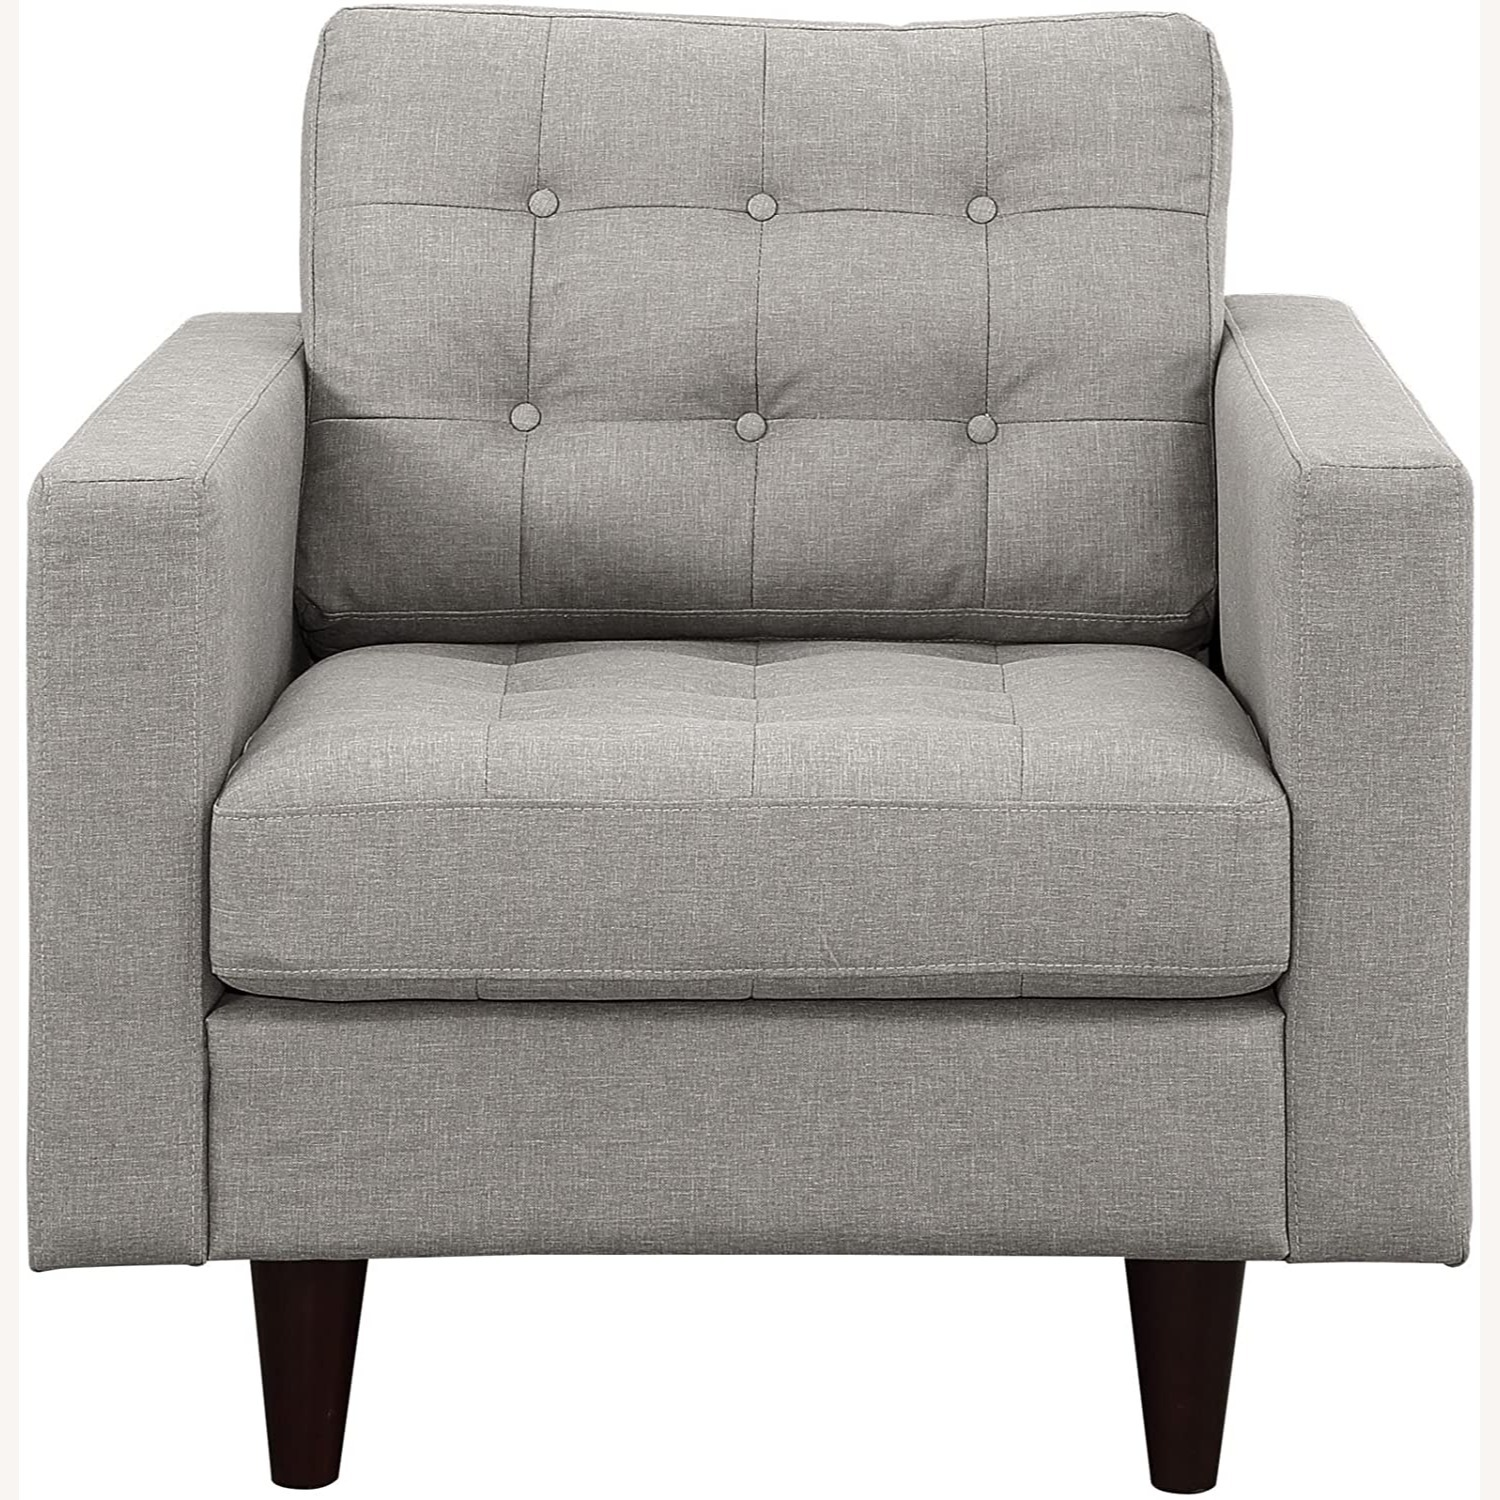 Armchair In Gray Upholstery W/ Tufted Buttons - image-1